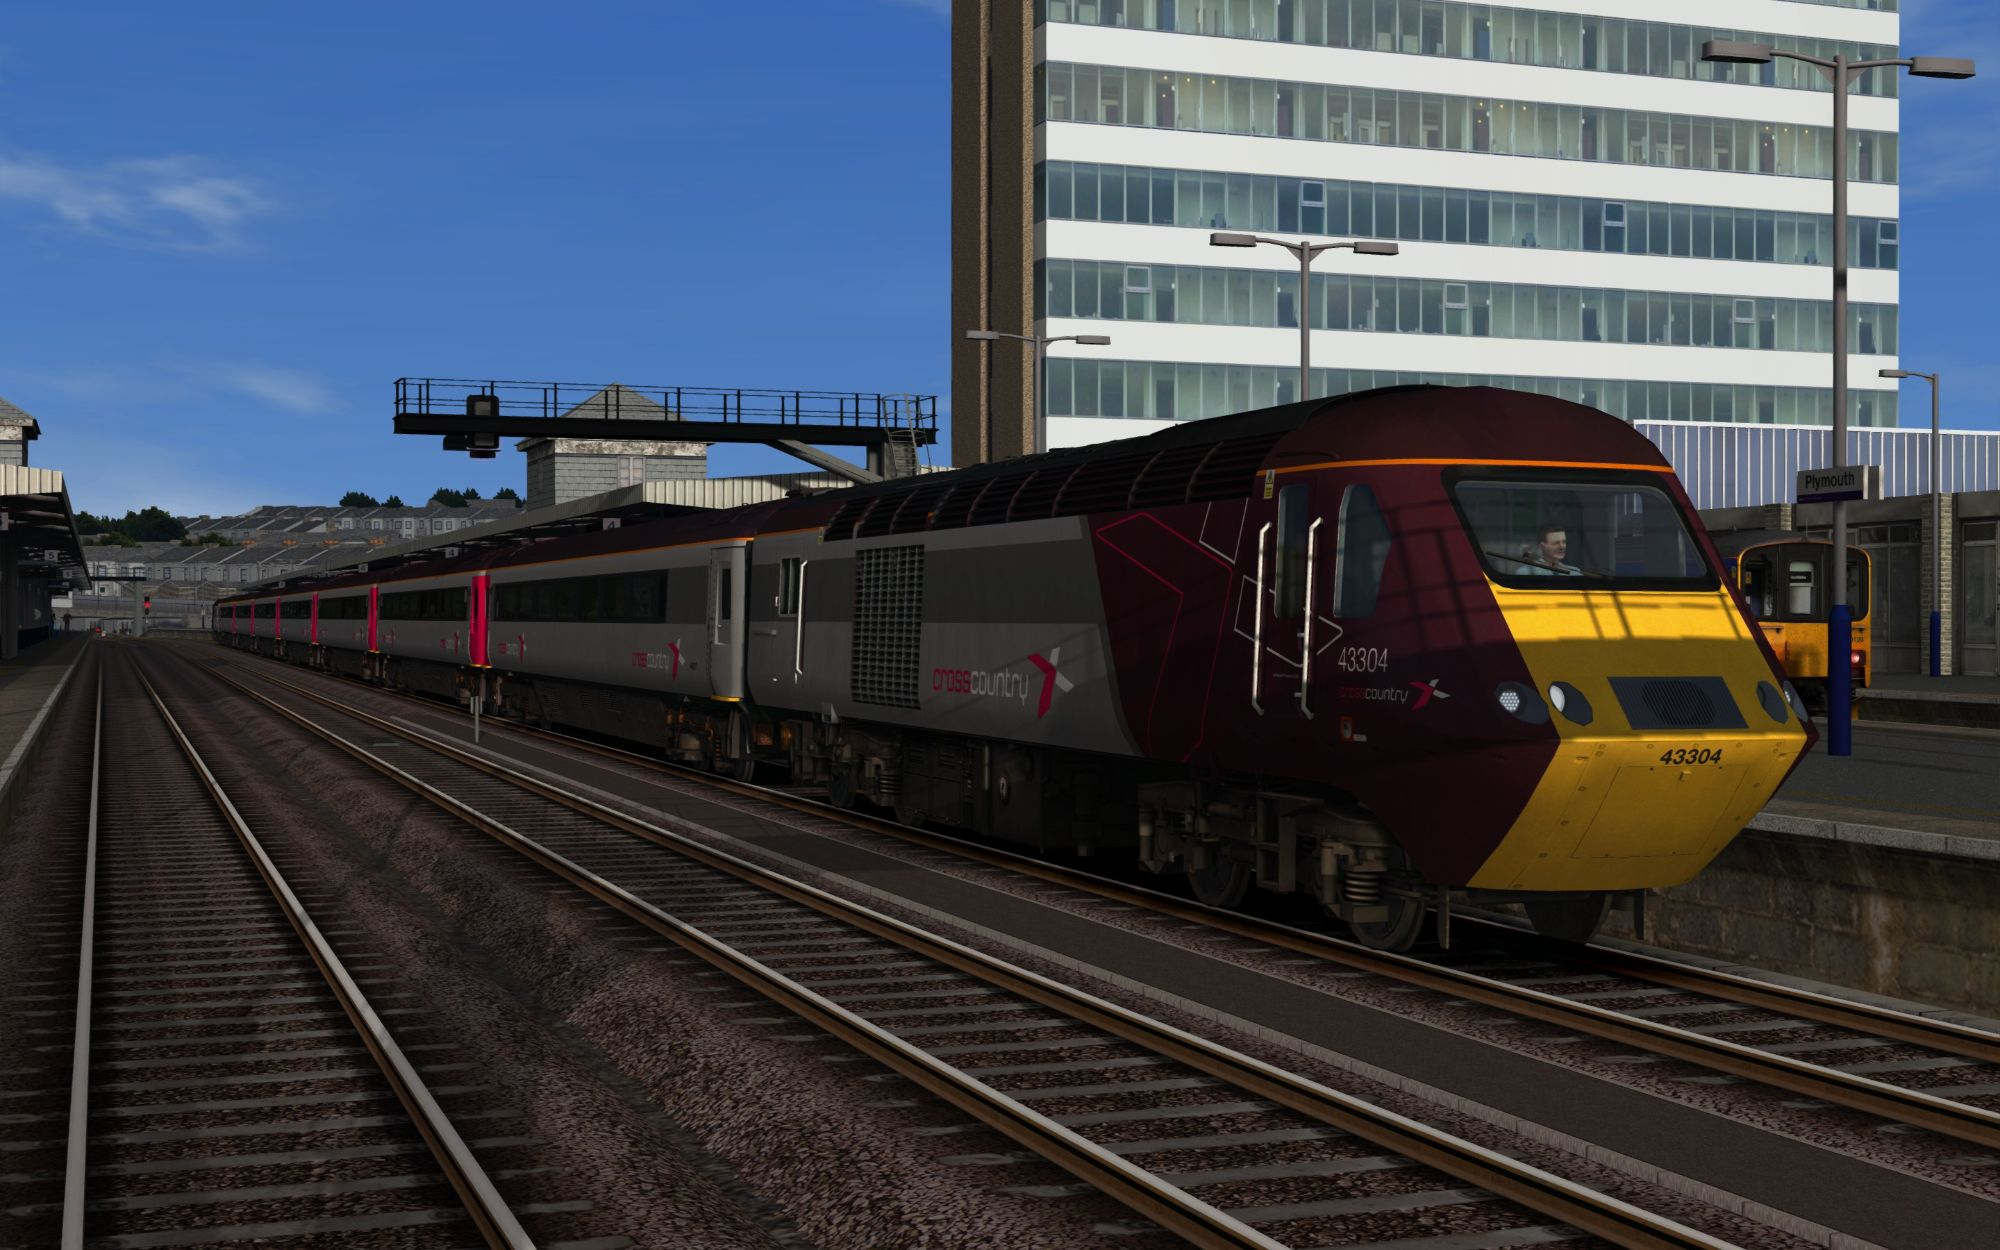 Image showing screenshot of the 1V58 - 0900 Glasgow Central to Penzance scenario